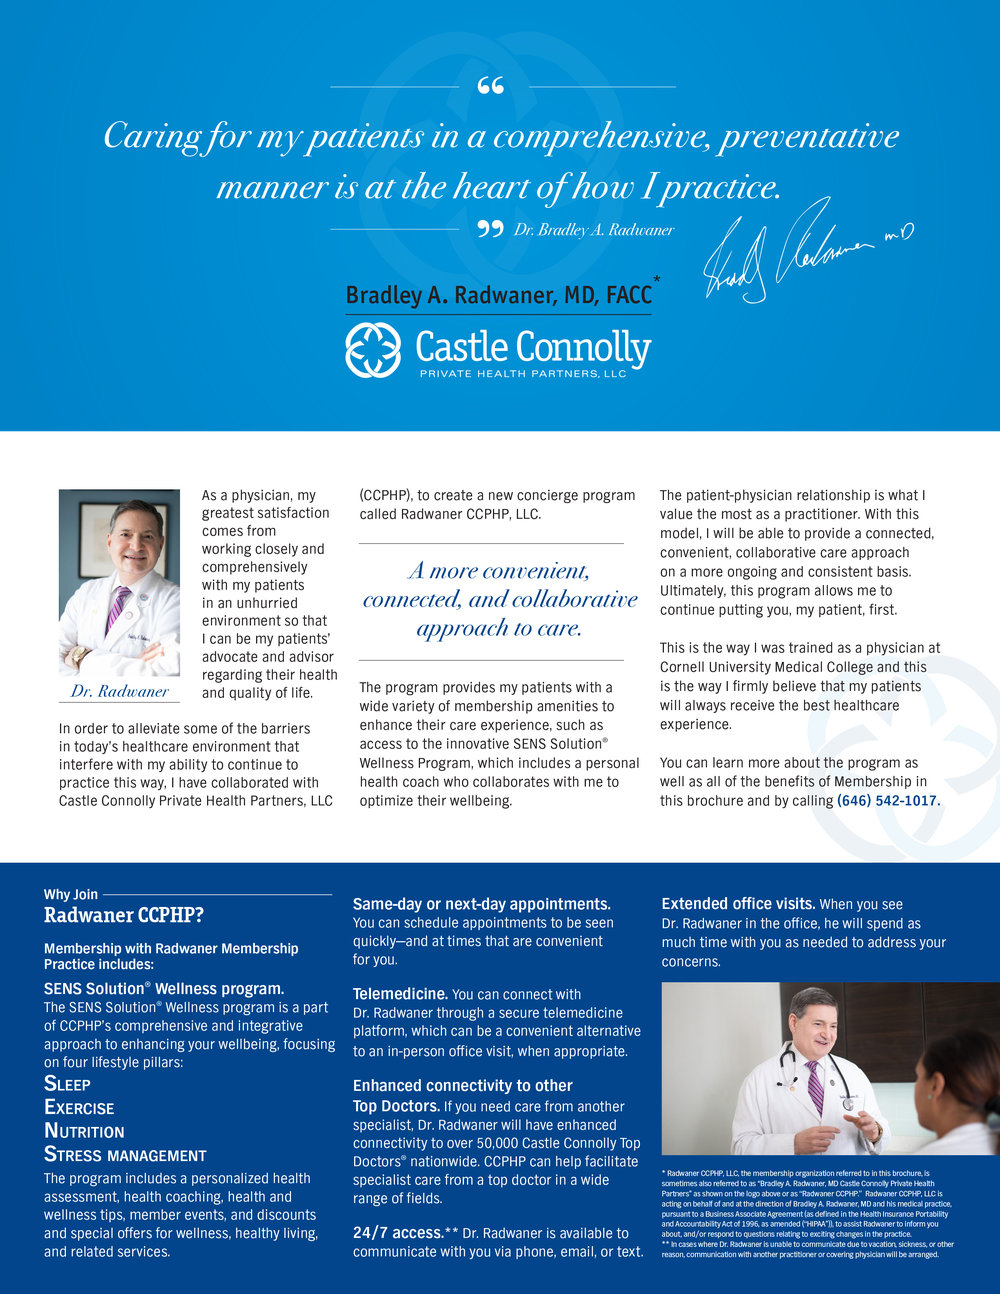 Castle Connolly Private Health Partners